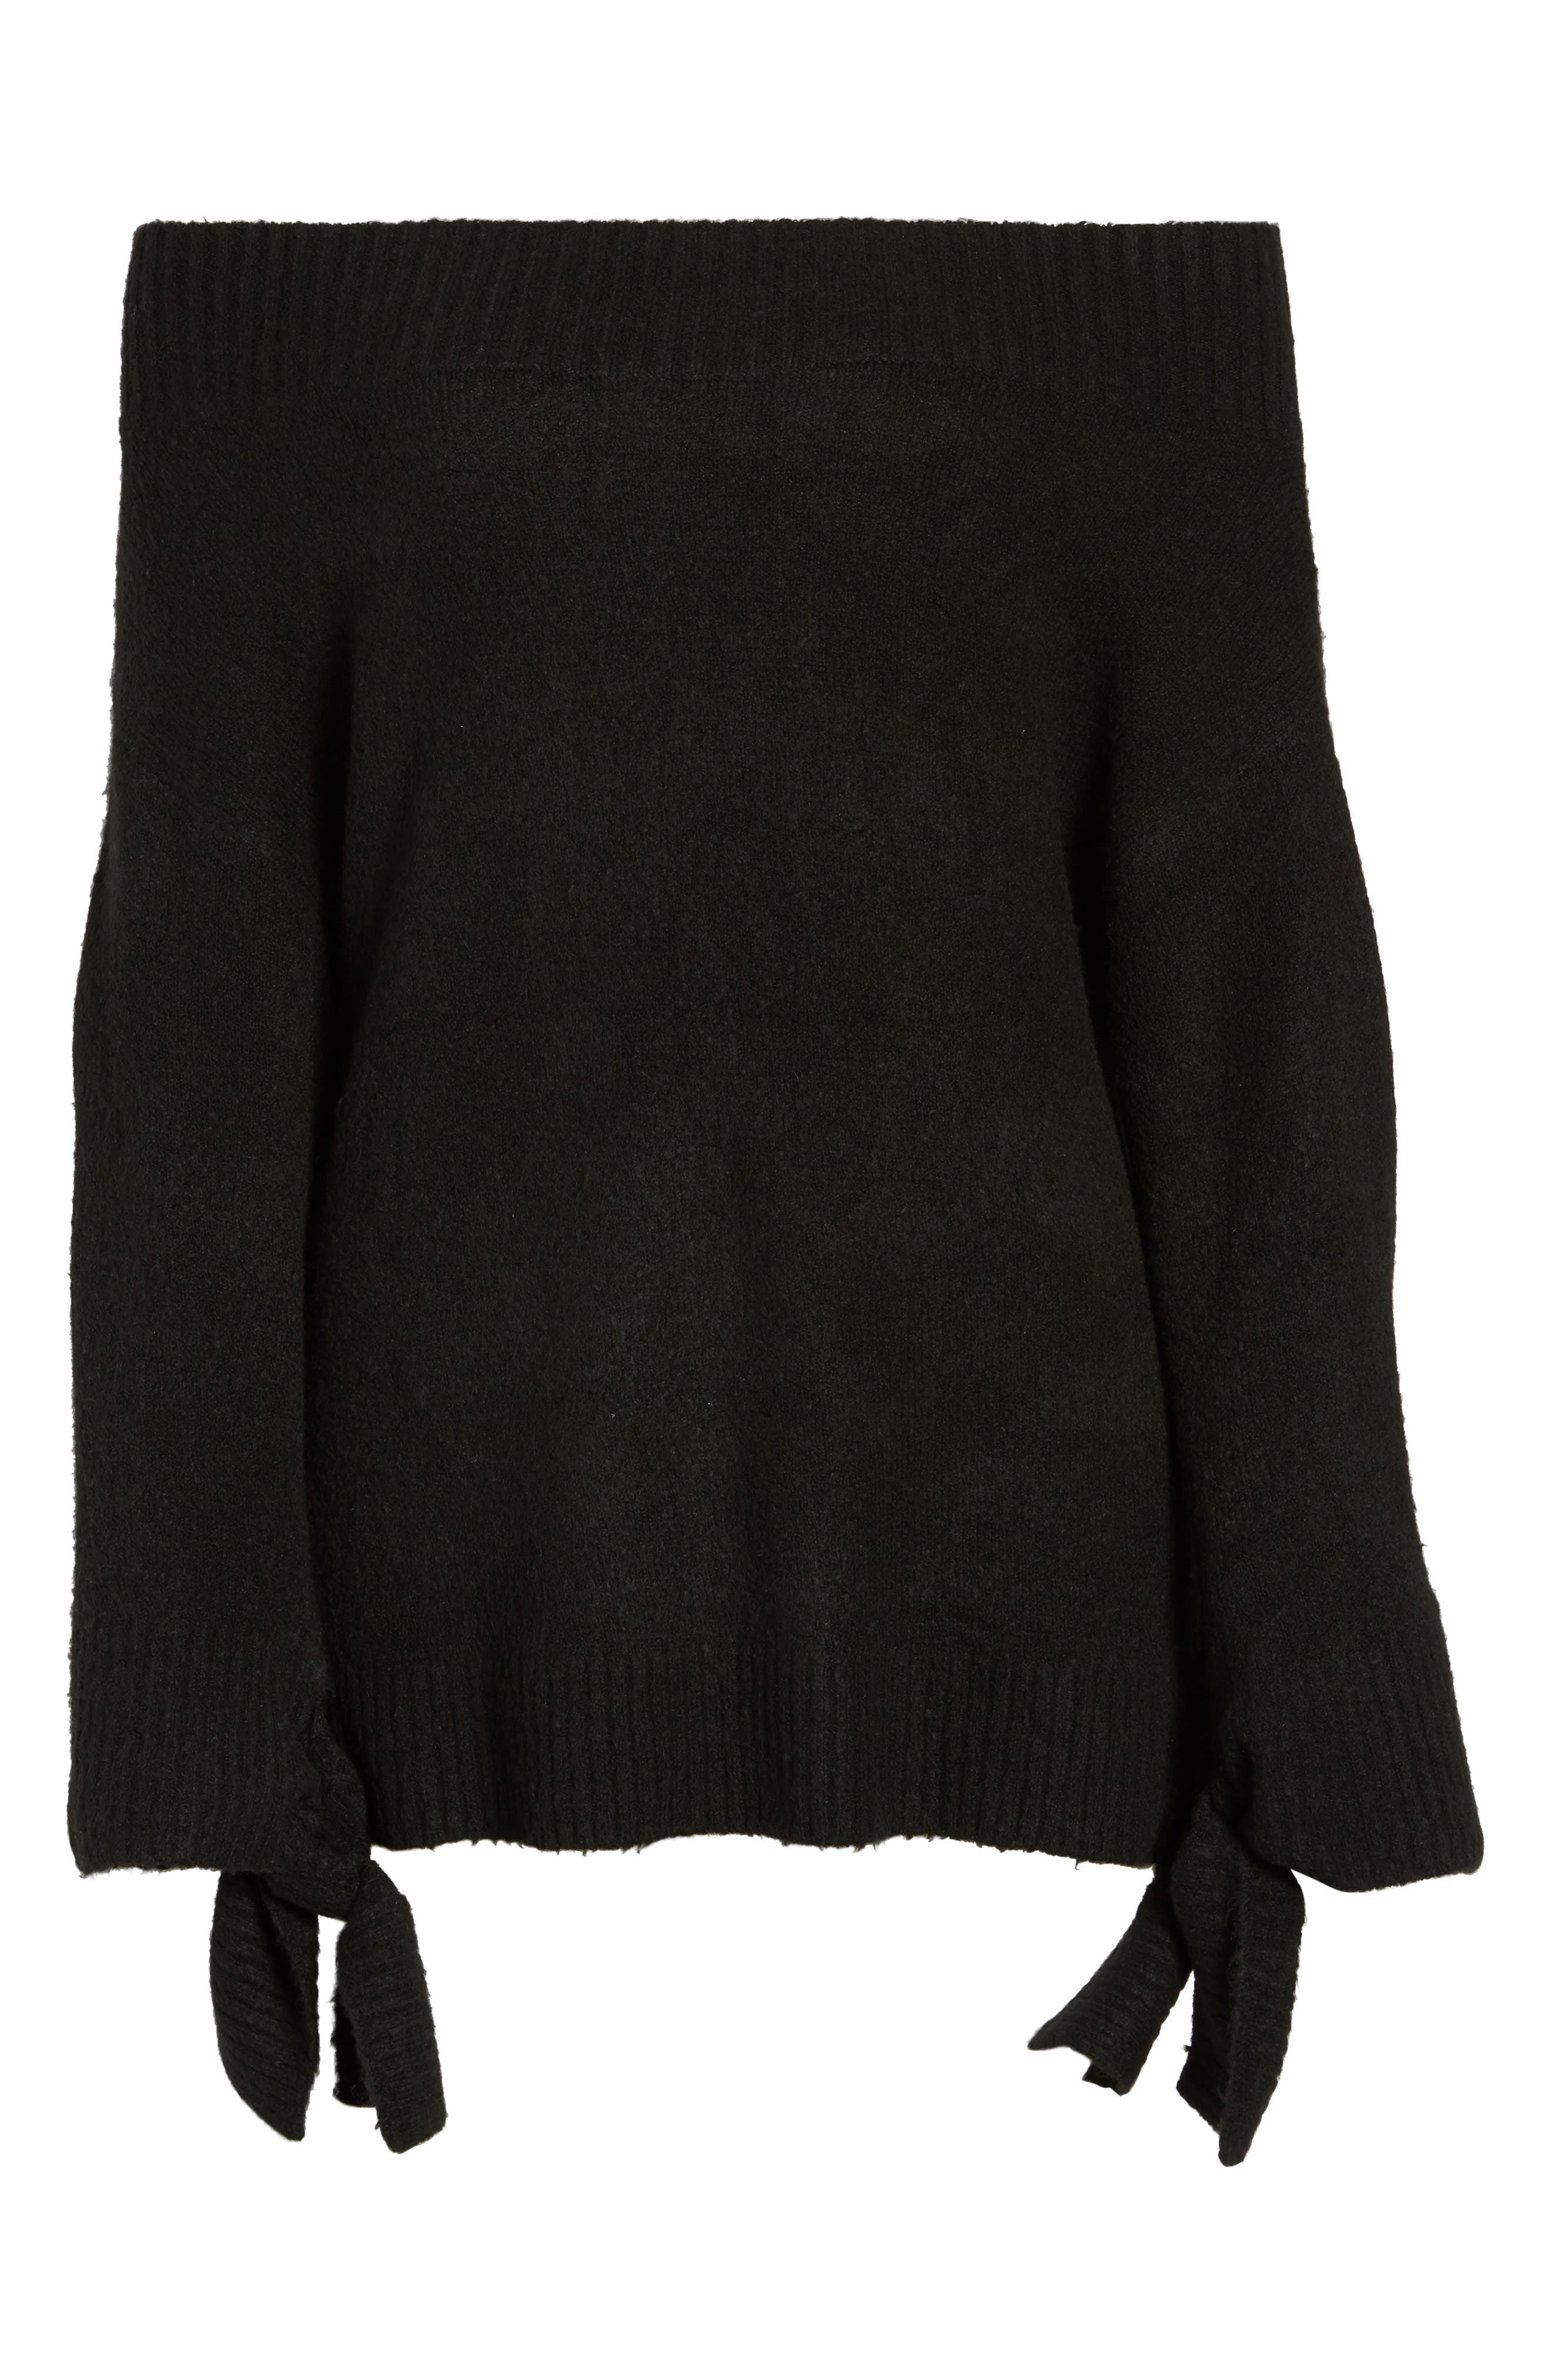 Off the Shoulder Sweater,                             Alternate thumbnail 6, color,                             001